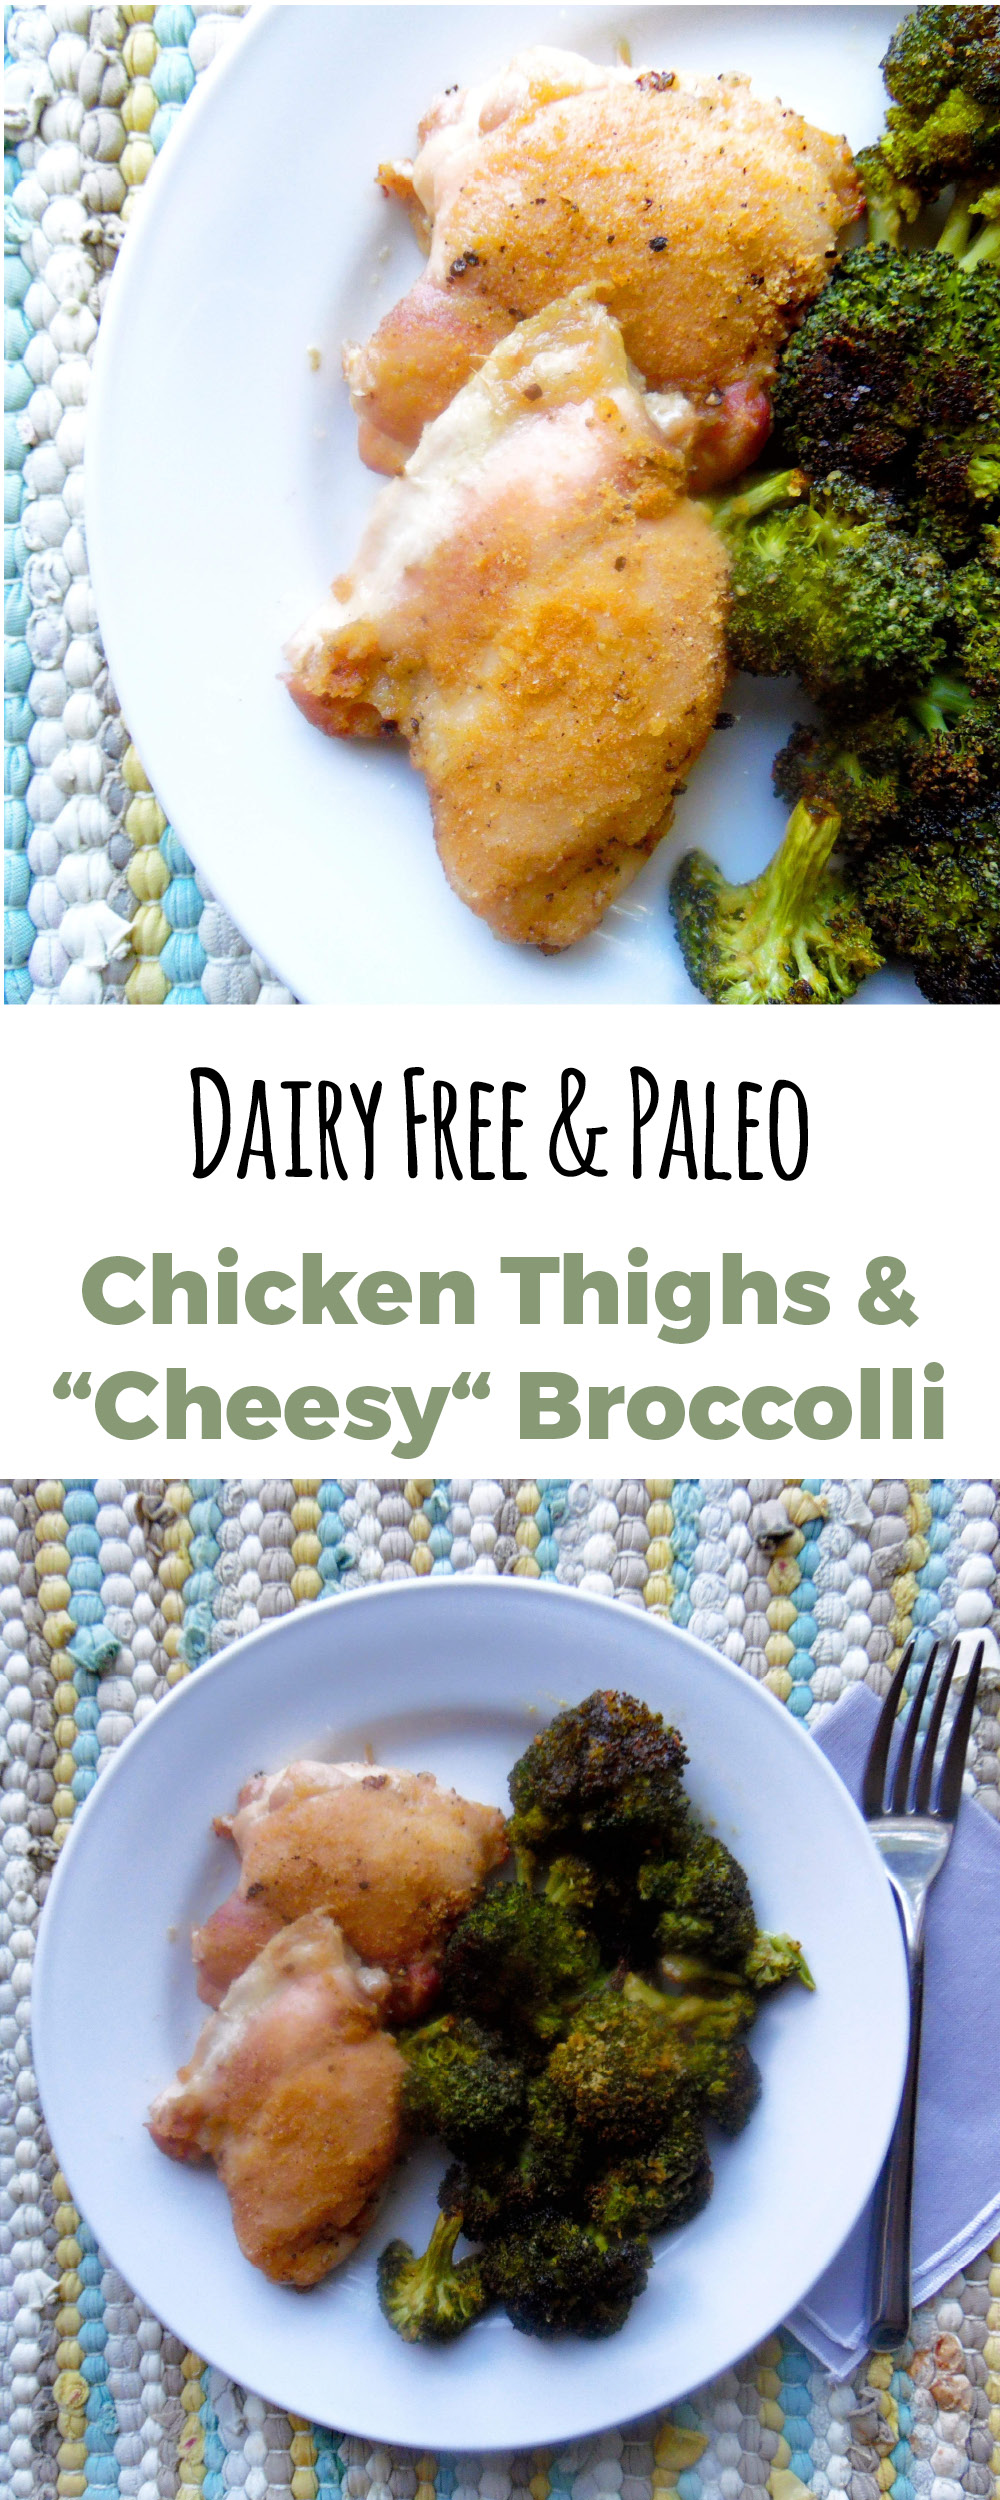 Week night meal for the whole family. Cheesy, dairy free broccoli and oven roasted chicken thighs. Sheet pan cooked and done in thirty minutes. #paleo #dairyfree